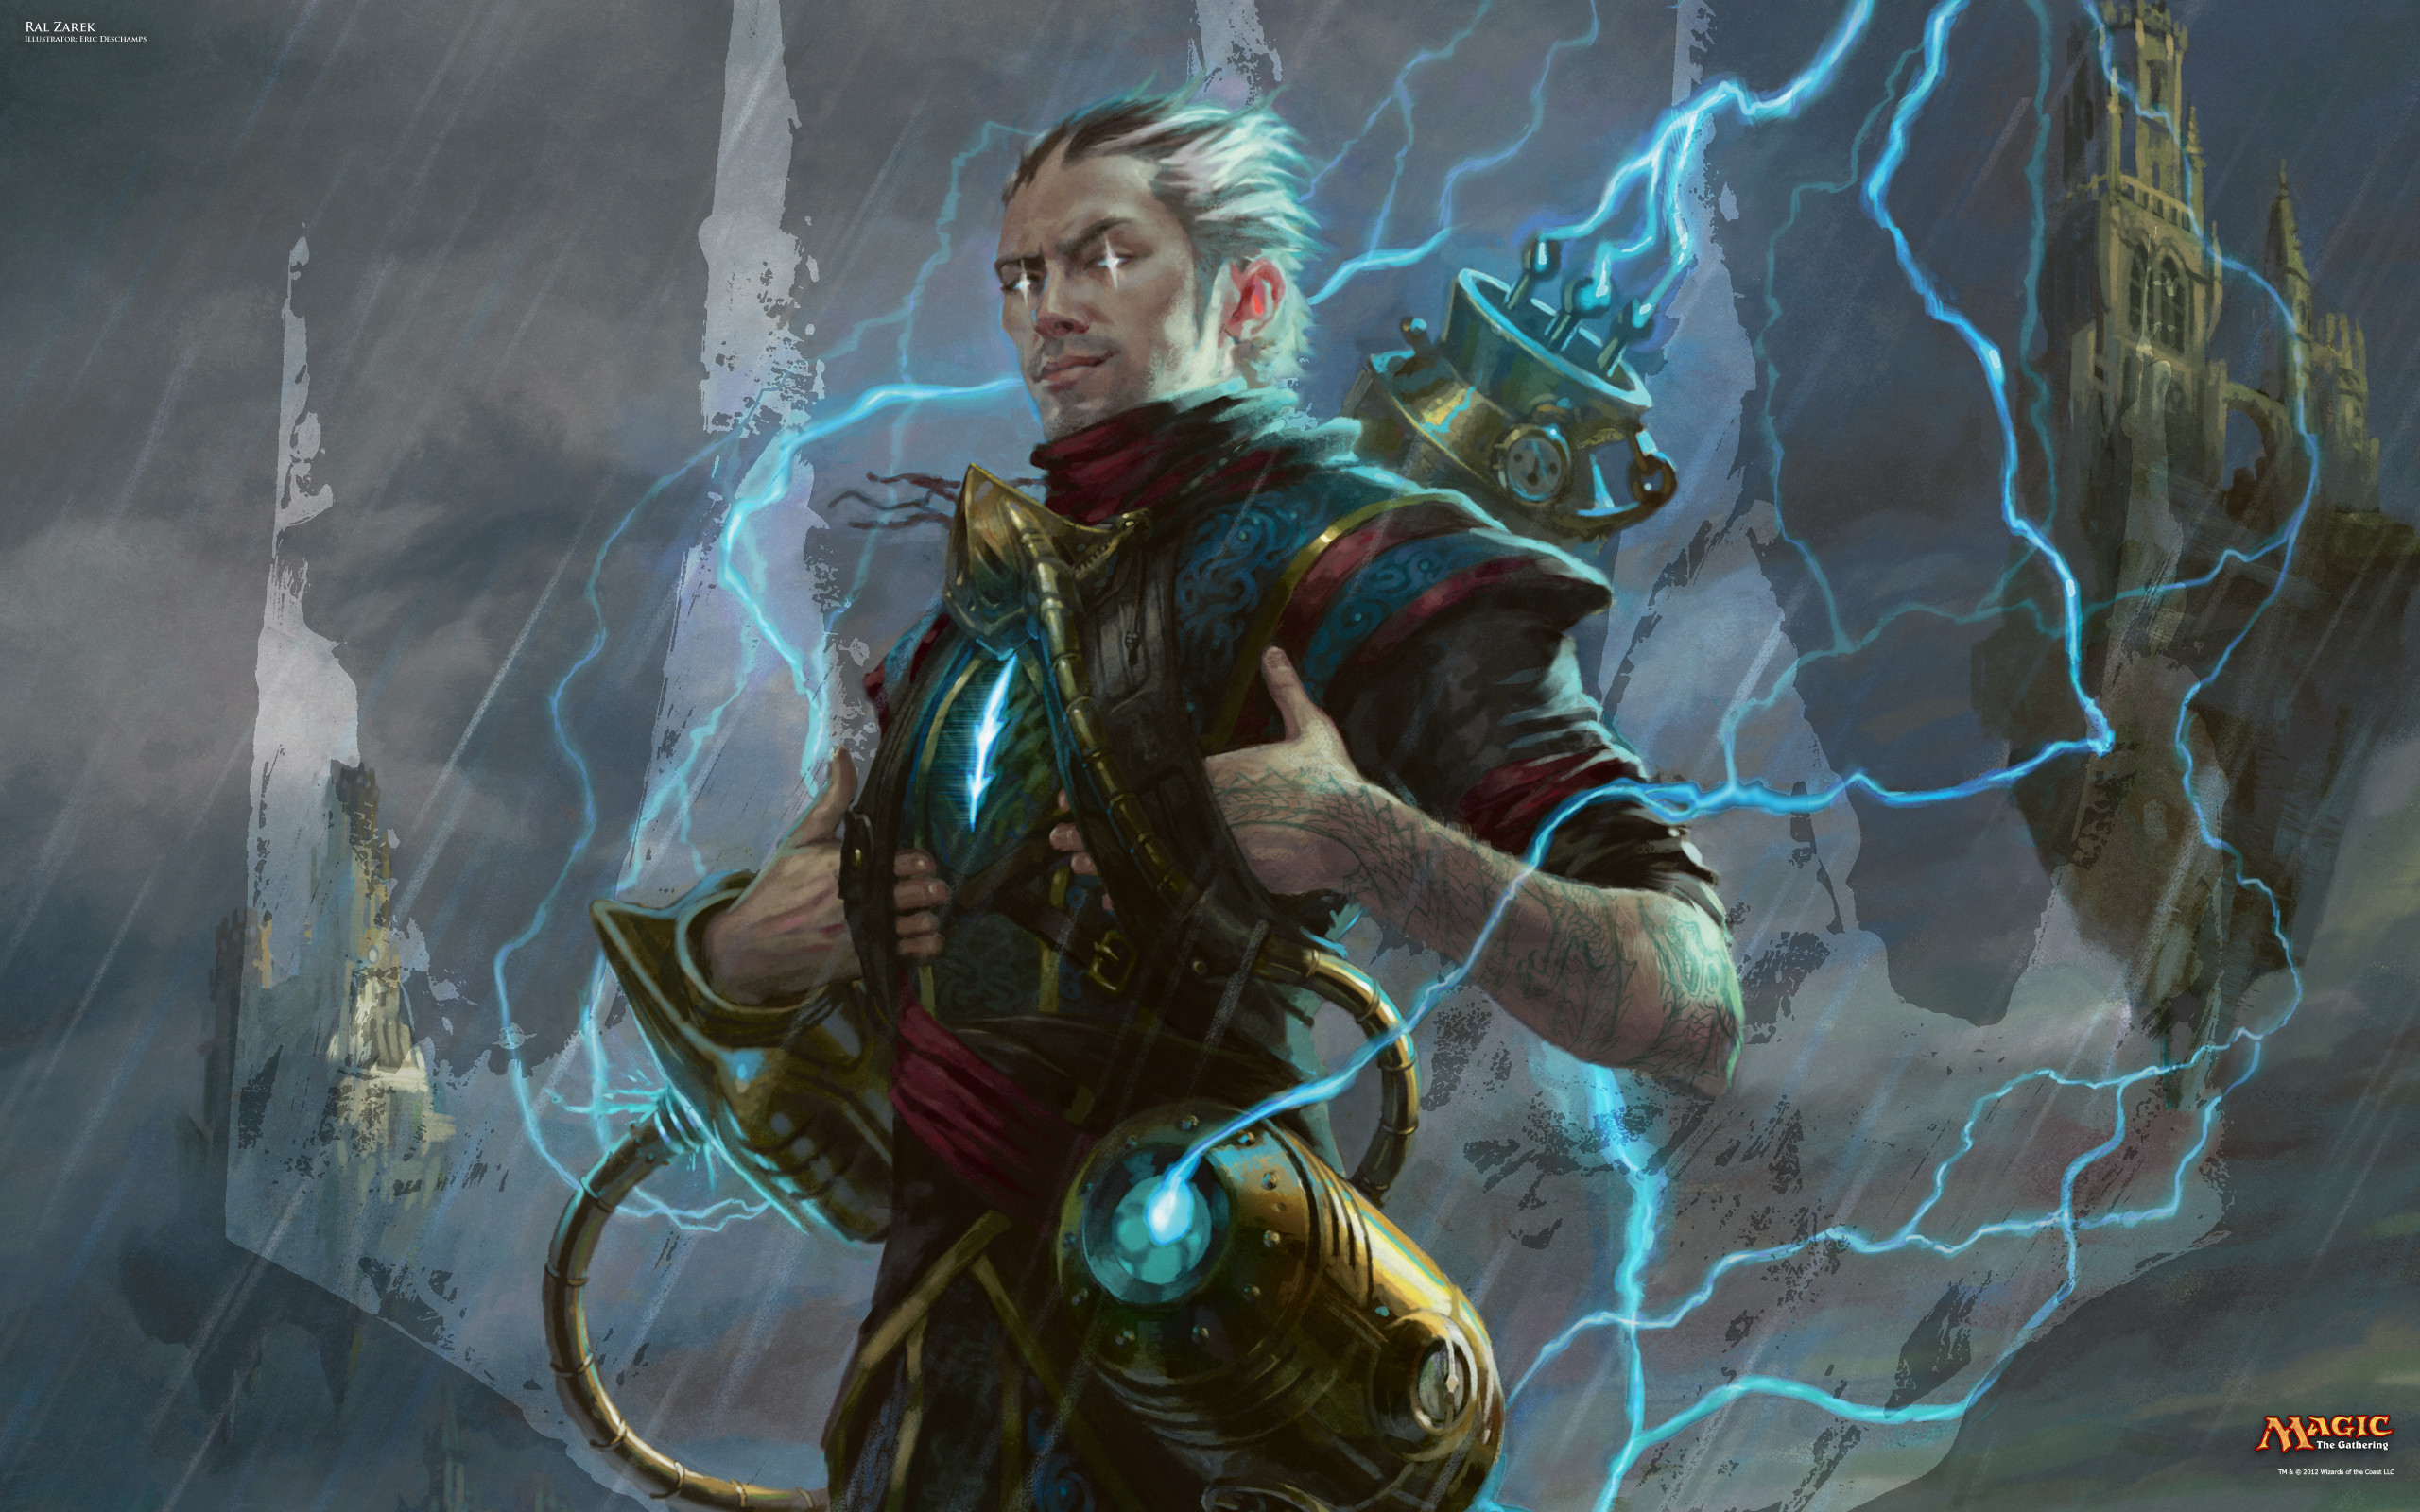 2560x1600 Magic The Gathering Wallpaper Planeswalker wallpaper of the week: ral .